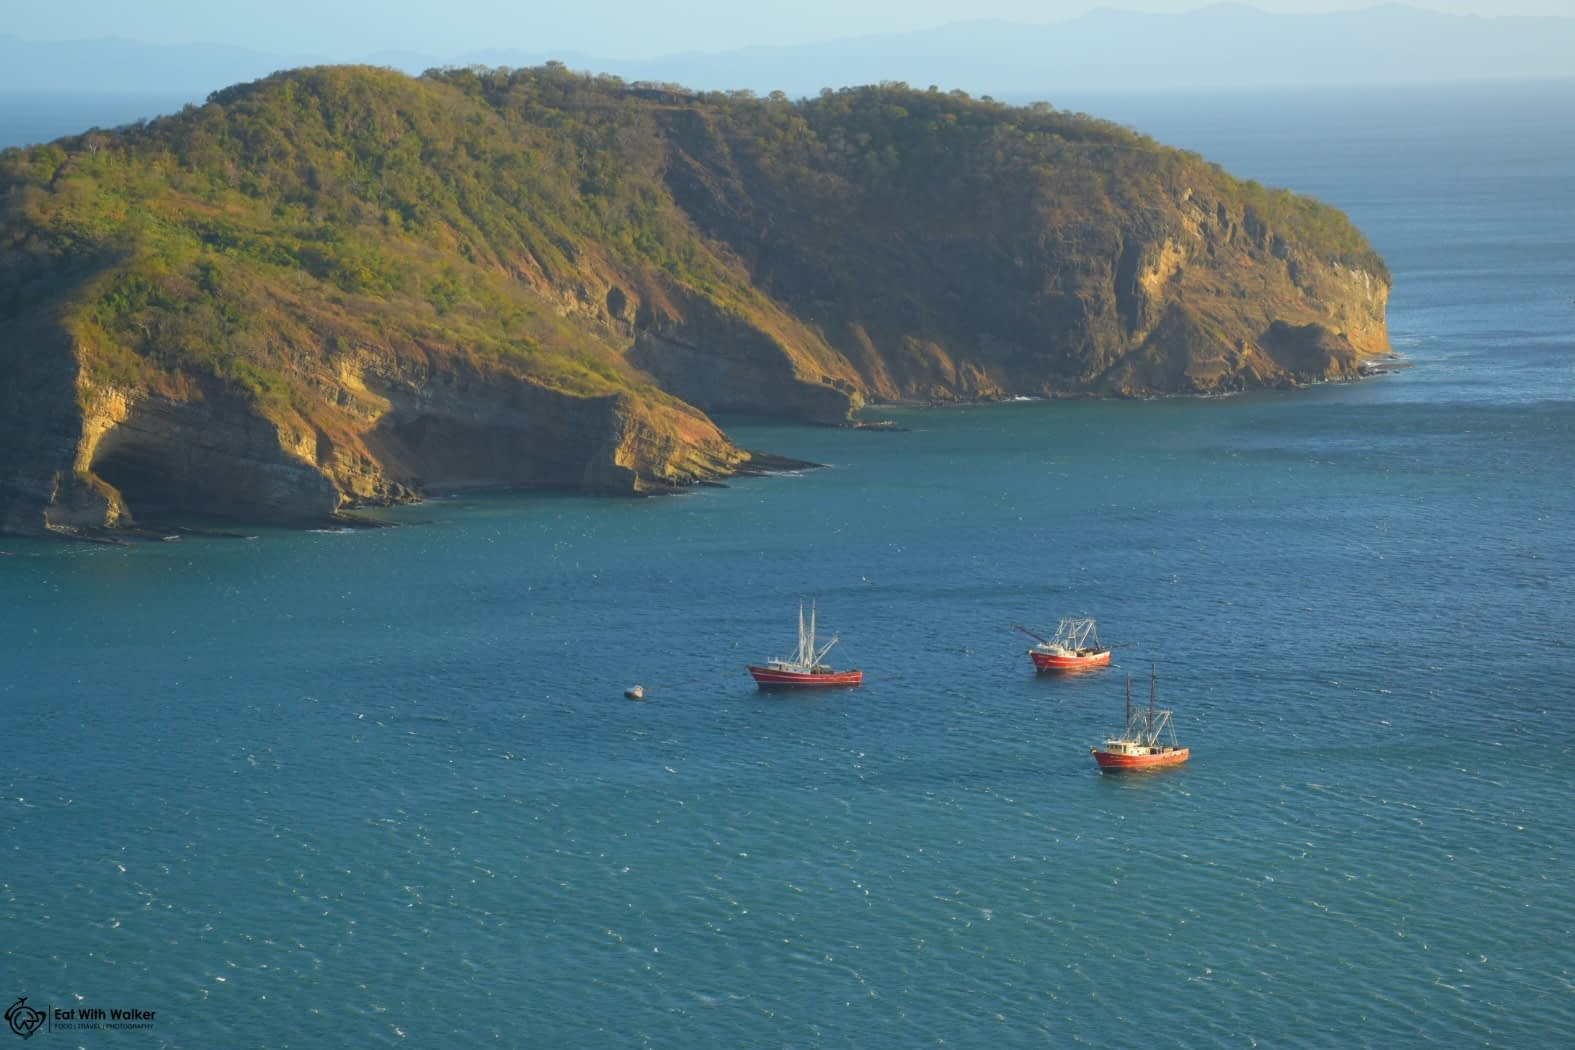 Boats in the bay - San Juan del Sur